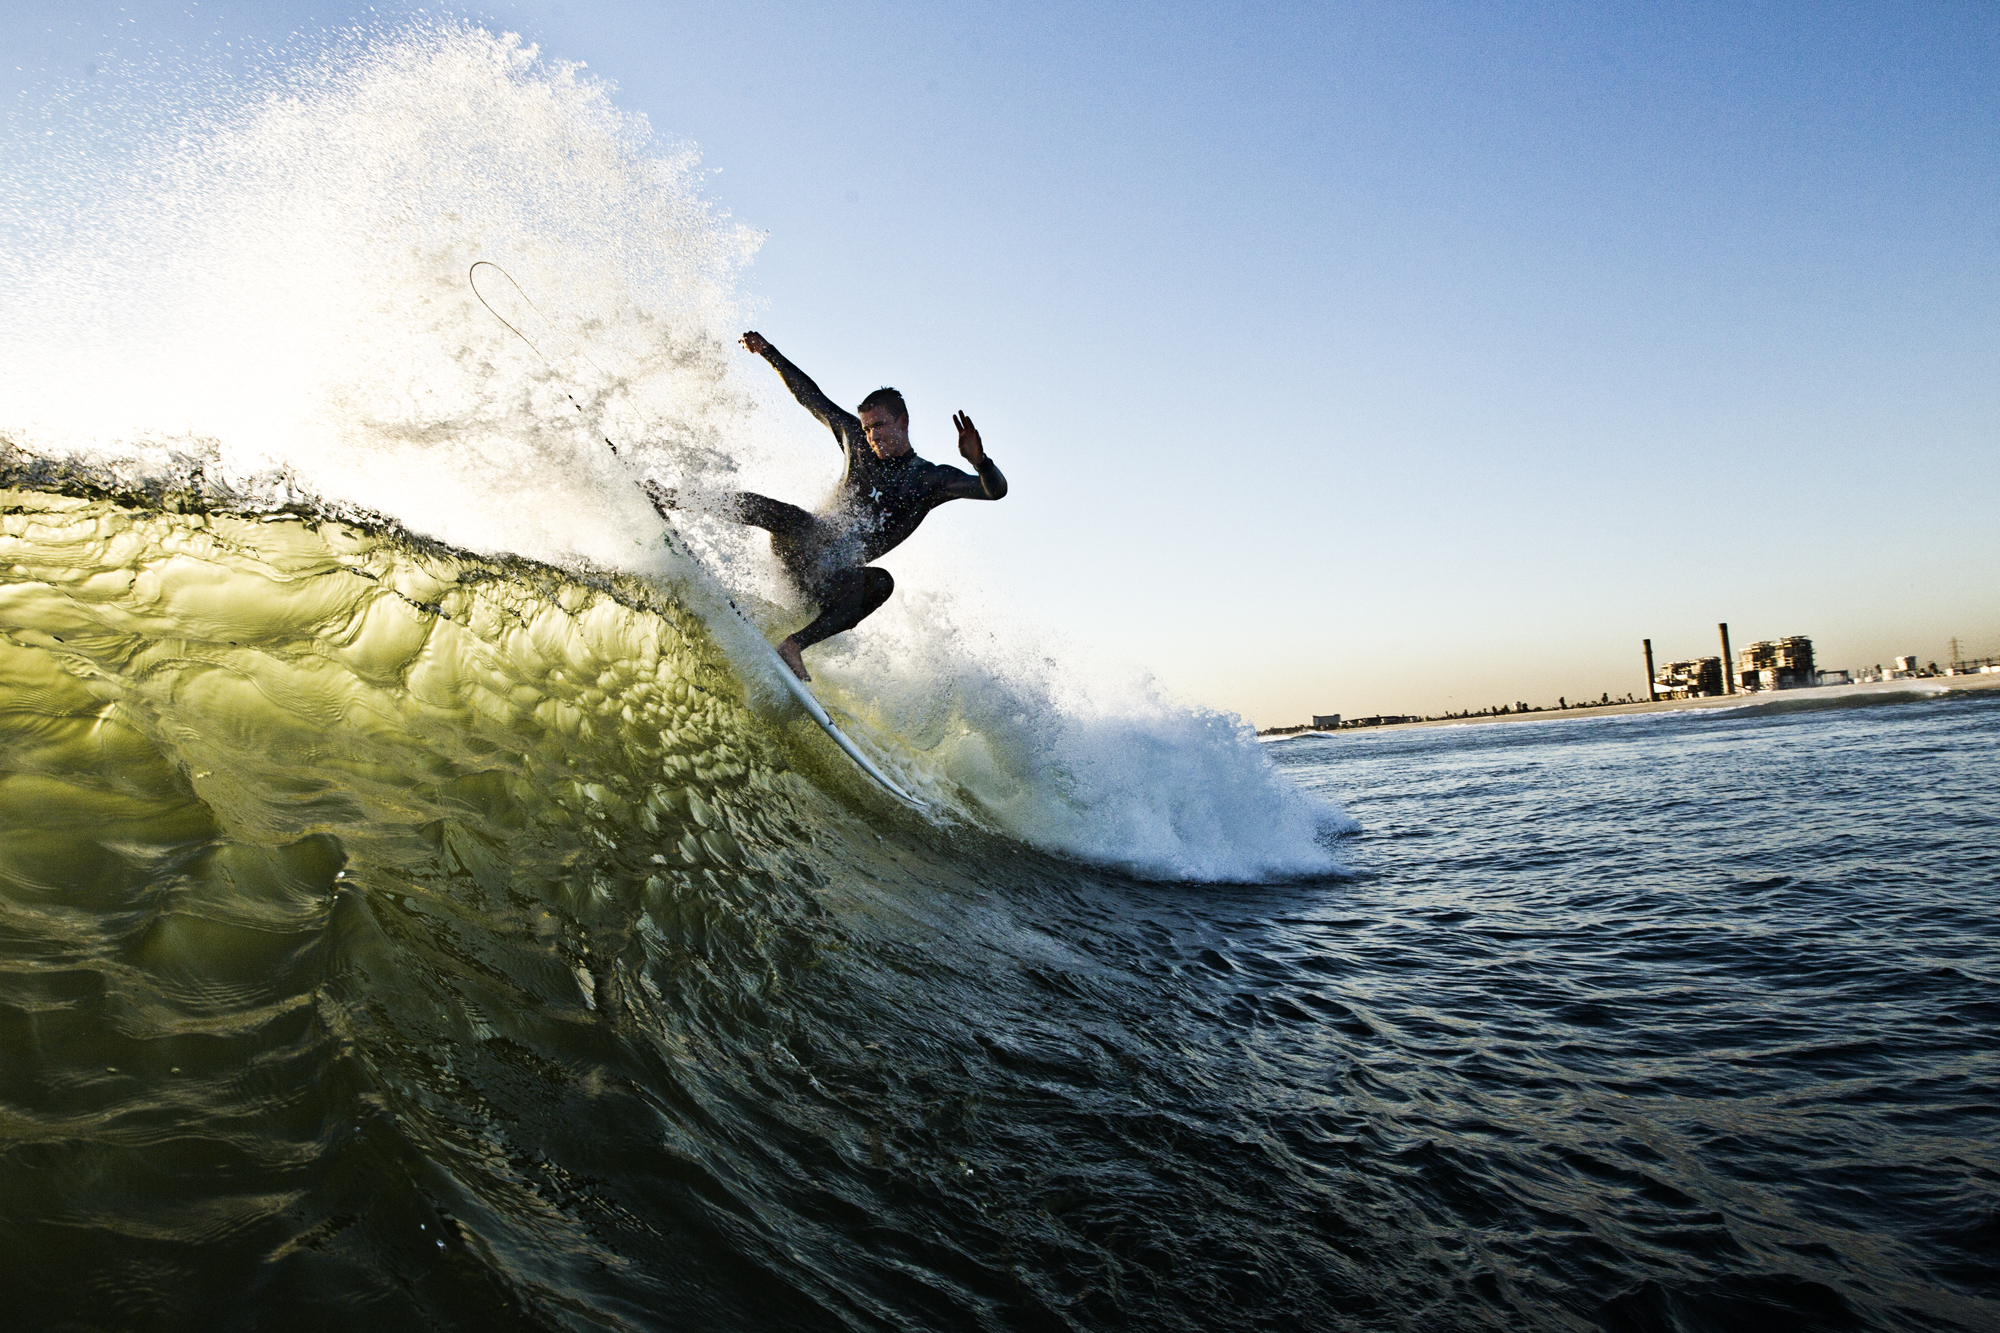 surf-wallpaper-hurley-brett-simpson | wallpaper.wiki